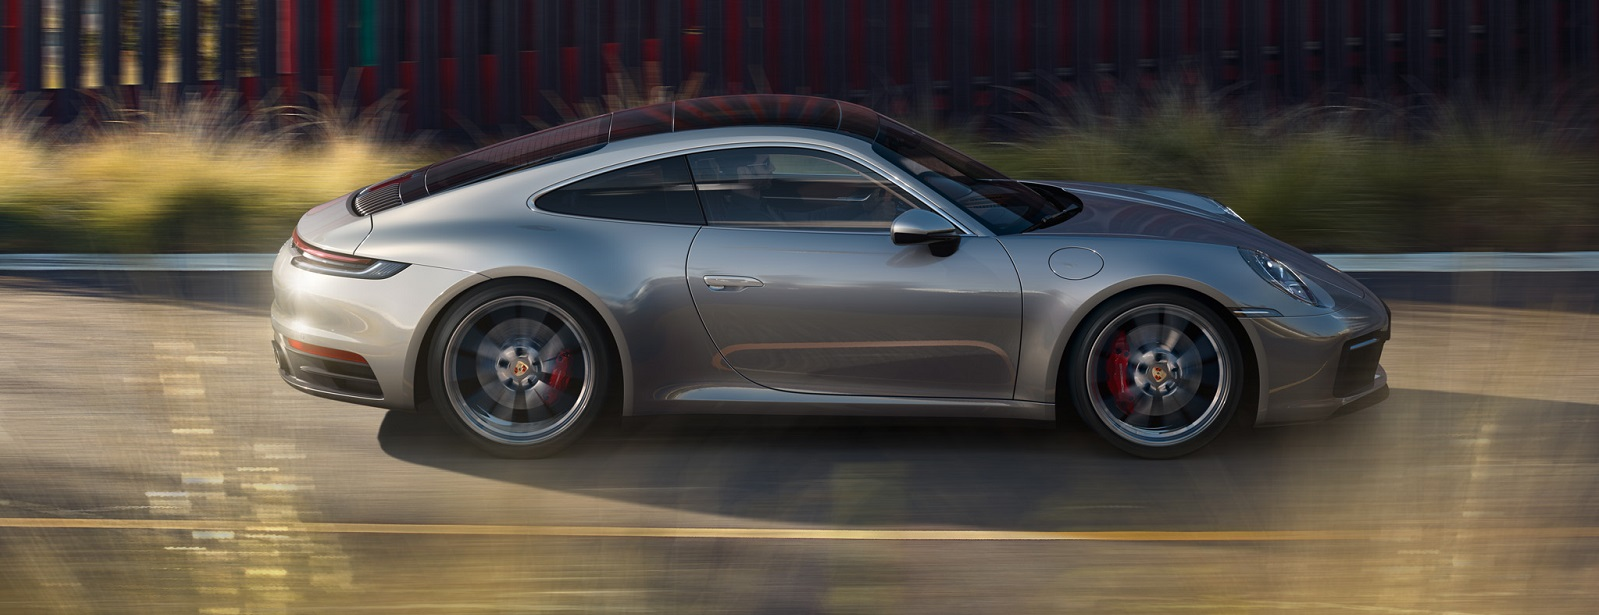 911 Carrera S: Motor Performance Car of the Year 2020